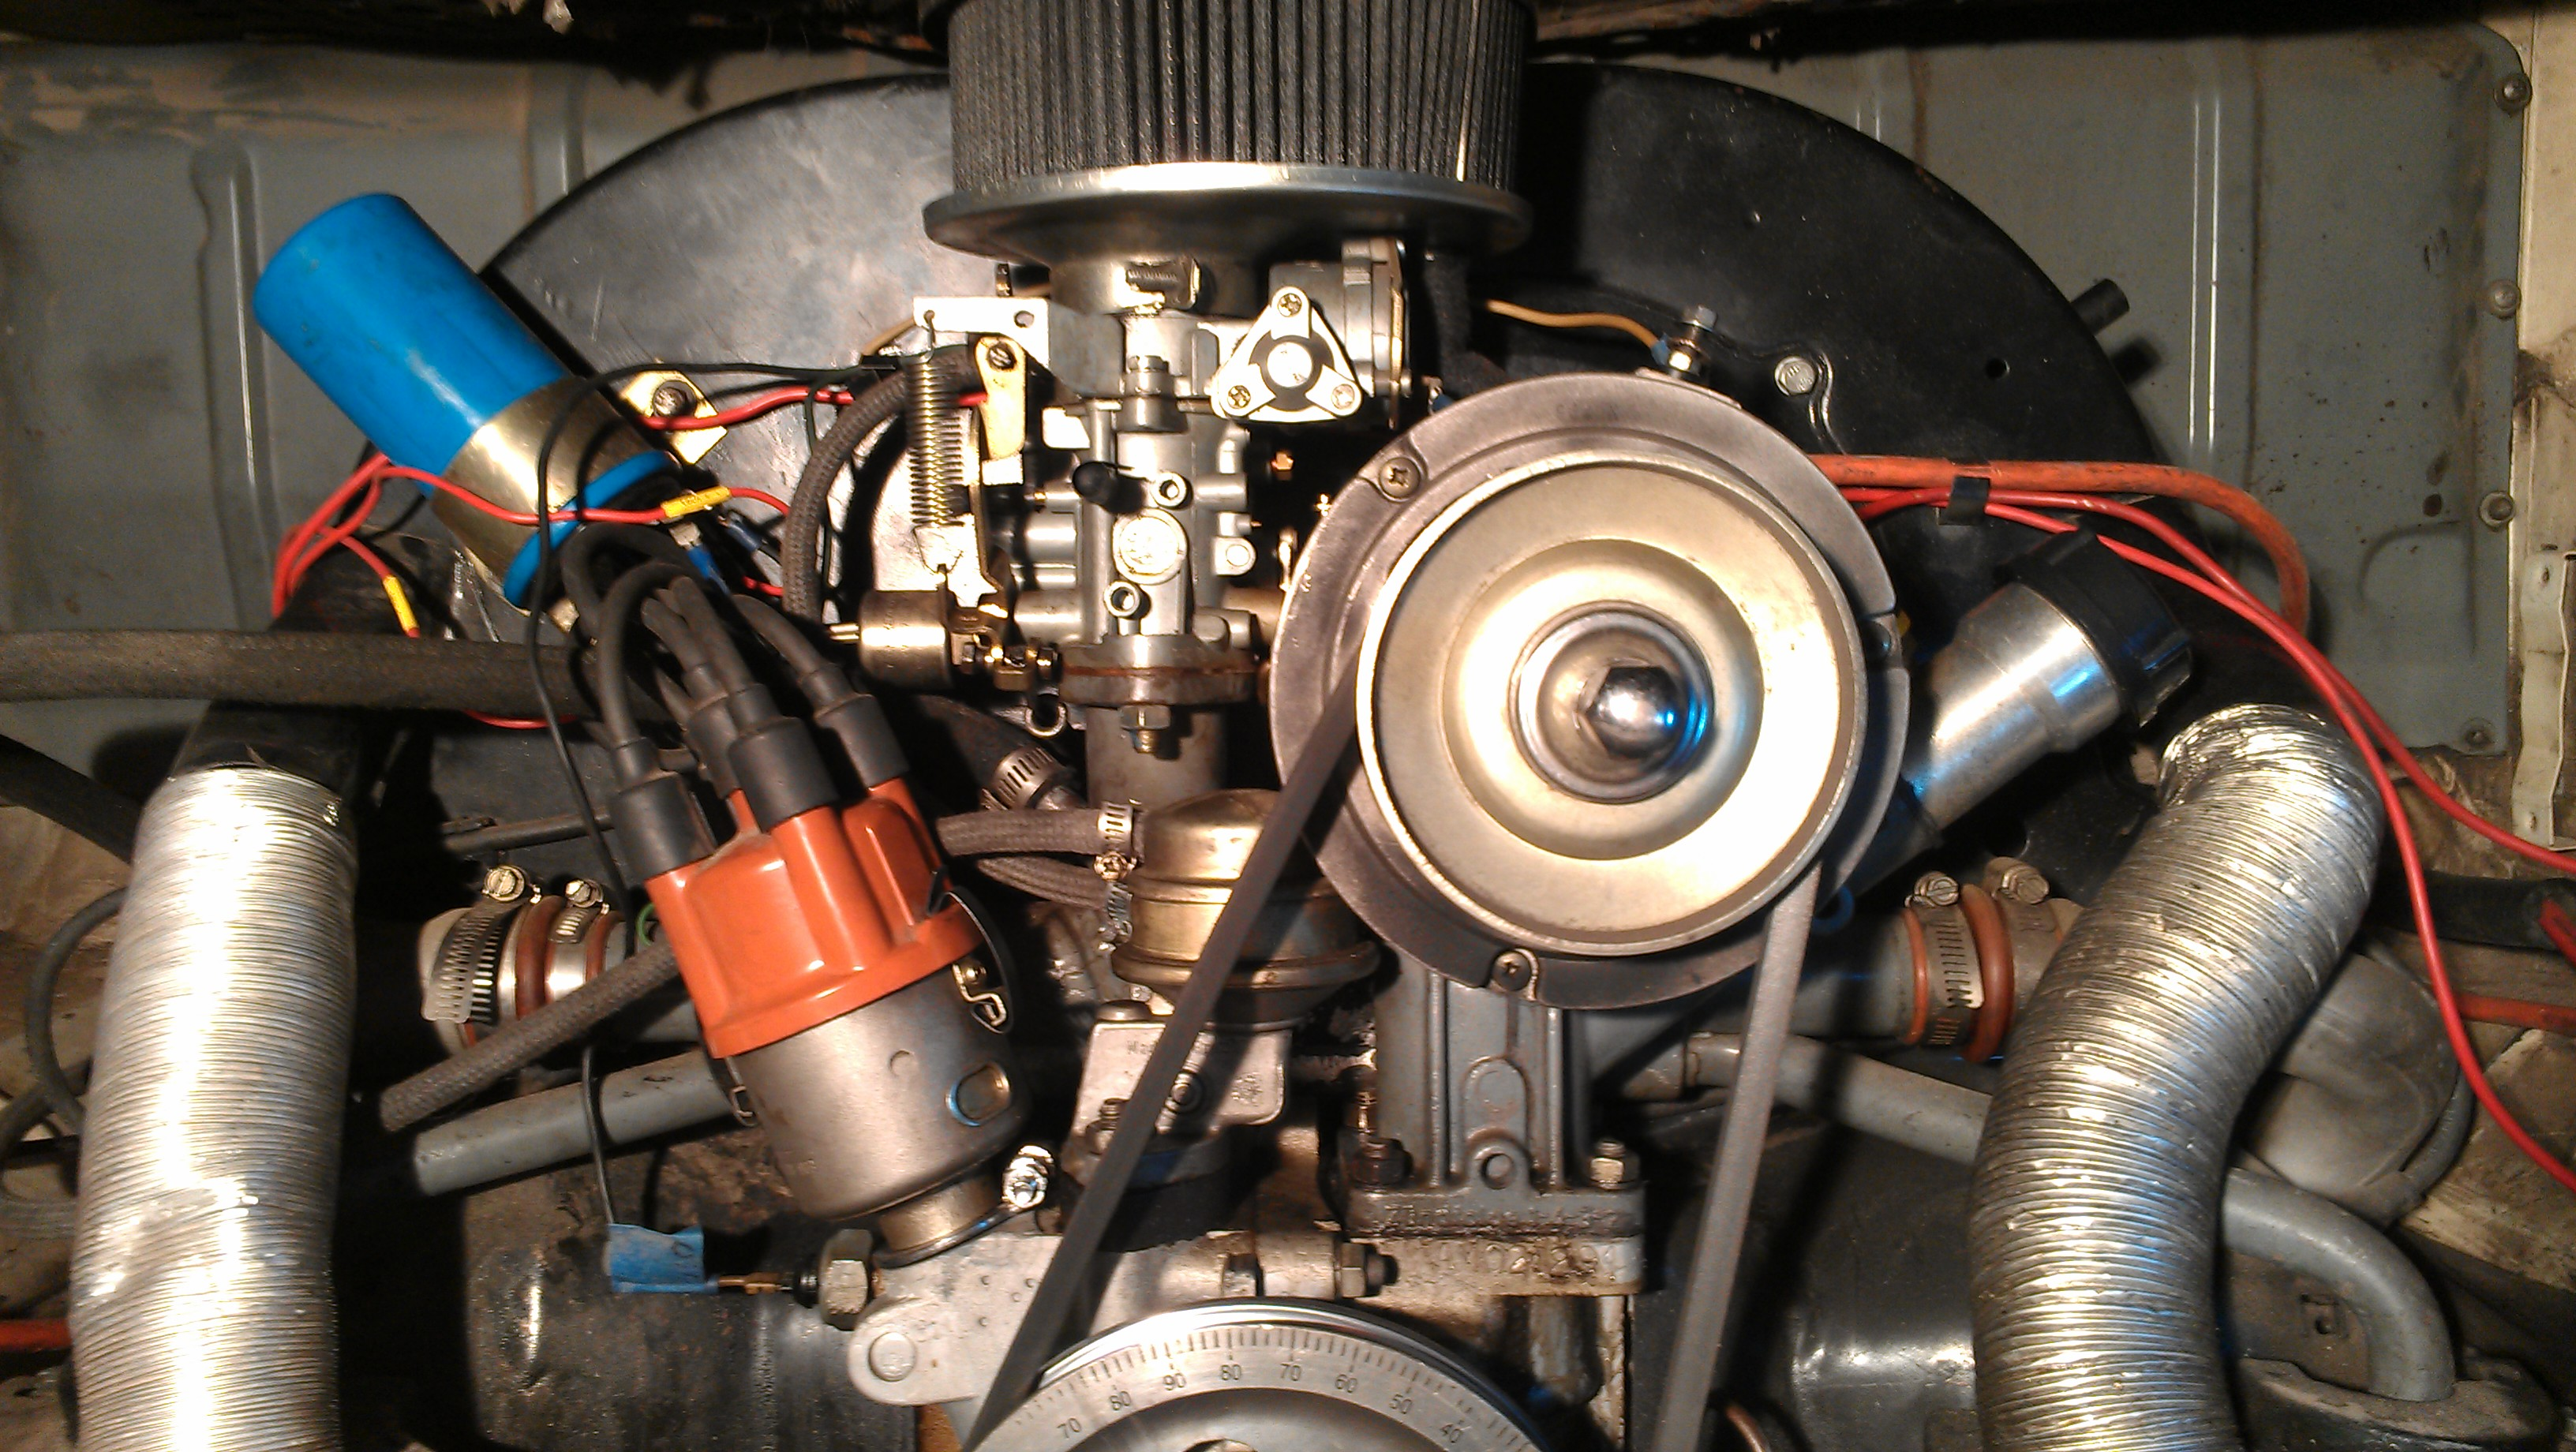 hight resolution of alternator replacement volkswagen upright type i motor 7 steps with pictures